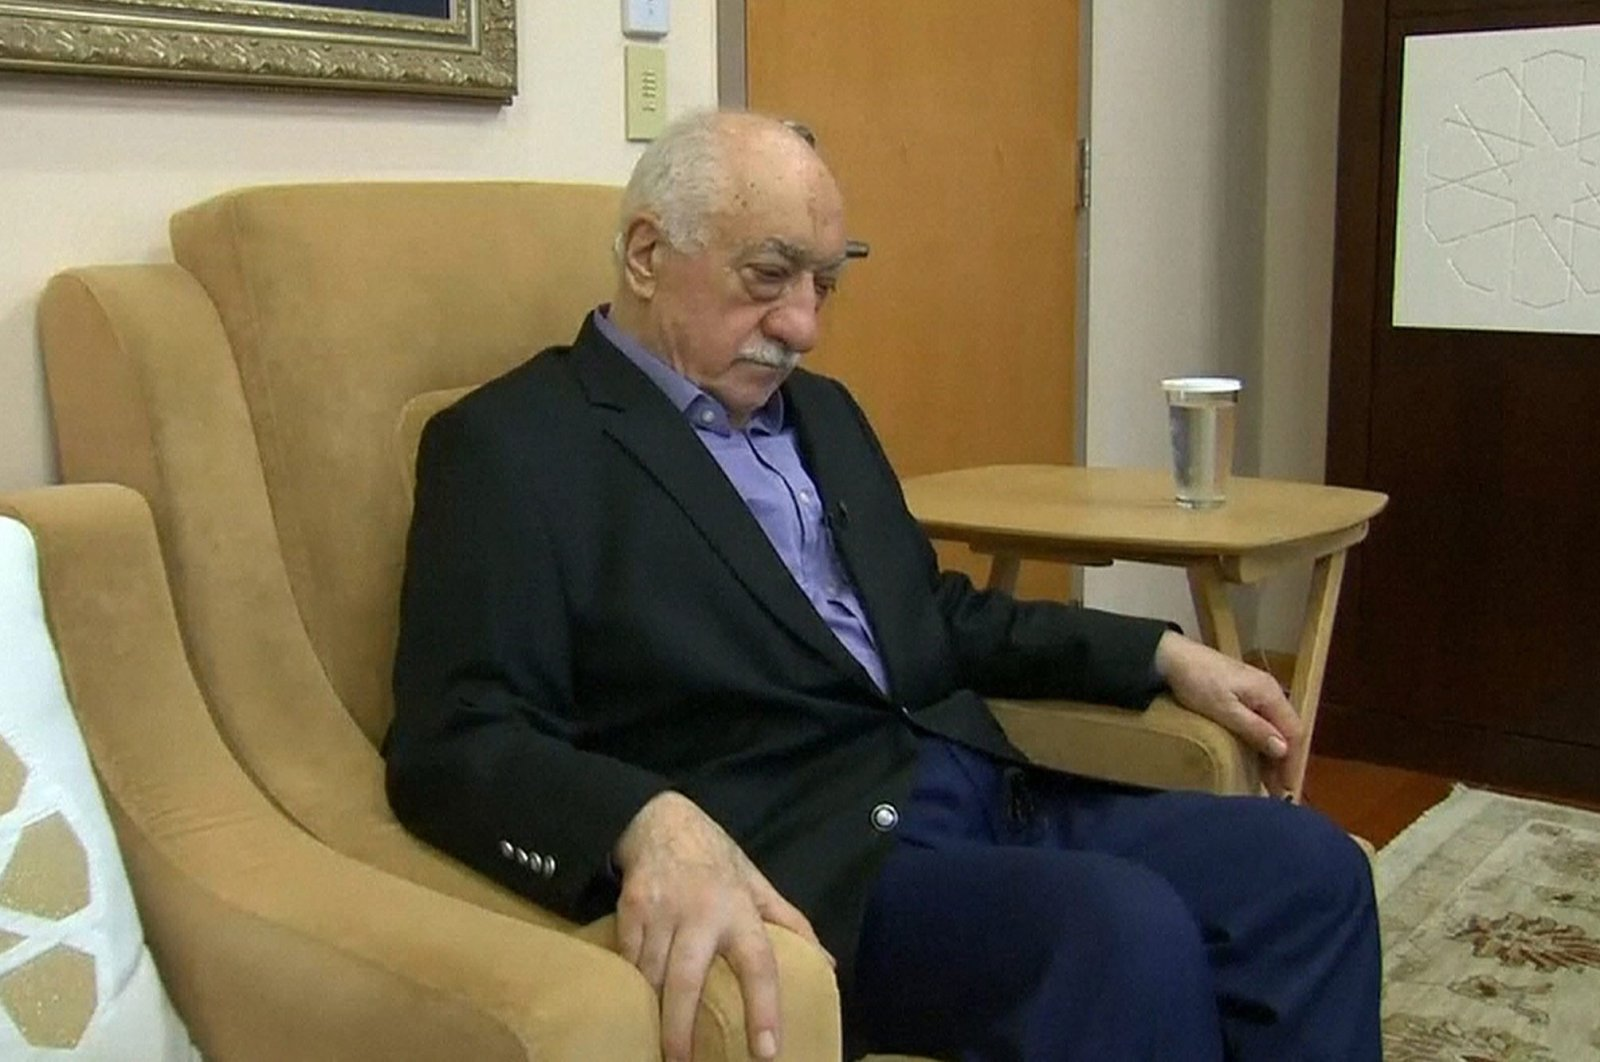 U.S.-based Gülenist Terror Group (FETÖ) leader Fethullah Gülen pauses before speaking to journalists in this still image taken from video, at his home in Saylorsburg, Pennsylvania, U.S., July 16, 2016. (Reuters Photo)